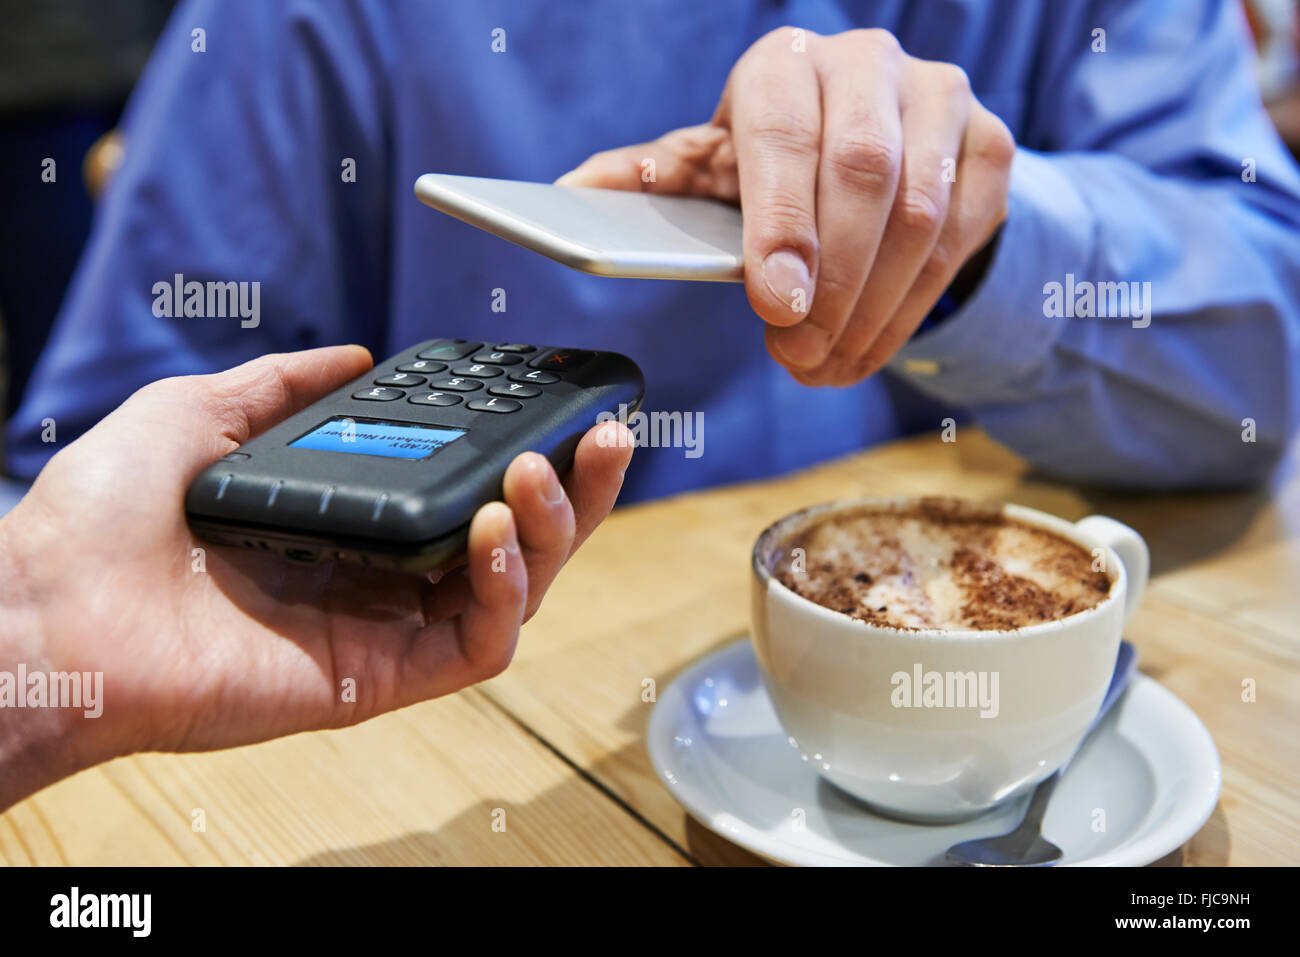 Man Using Contactless Payment App On Mobile Phone In Cafe - Stock Image